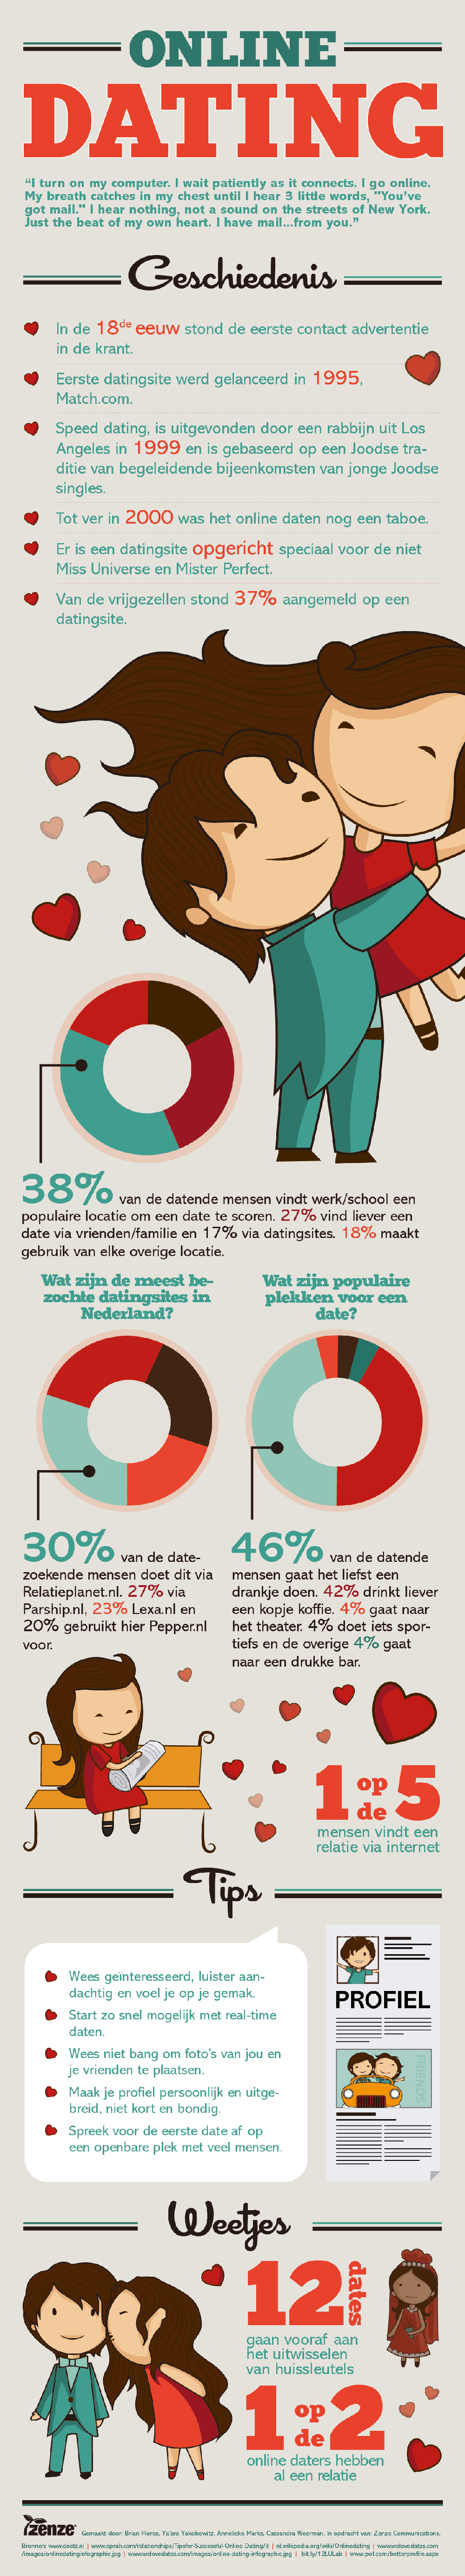 Infographic Feiten en weetjes over online dating